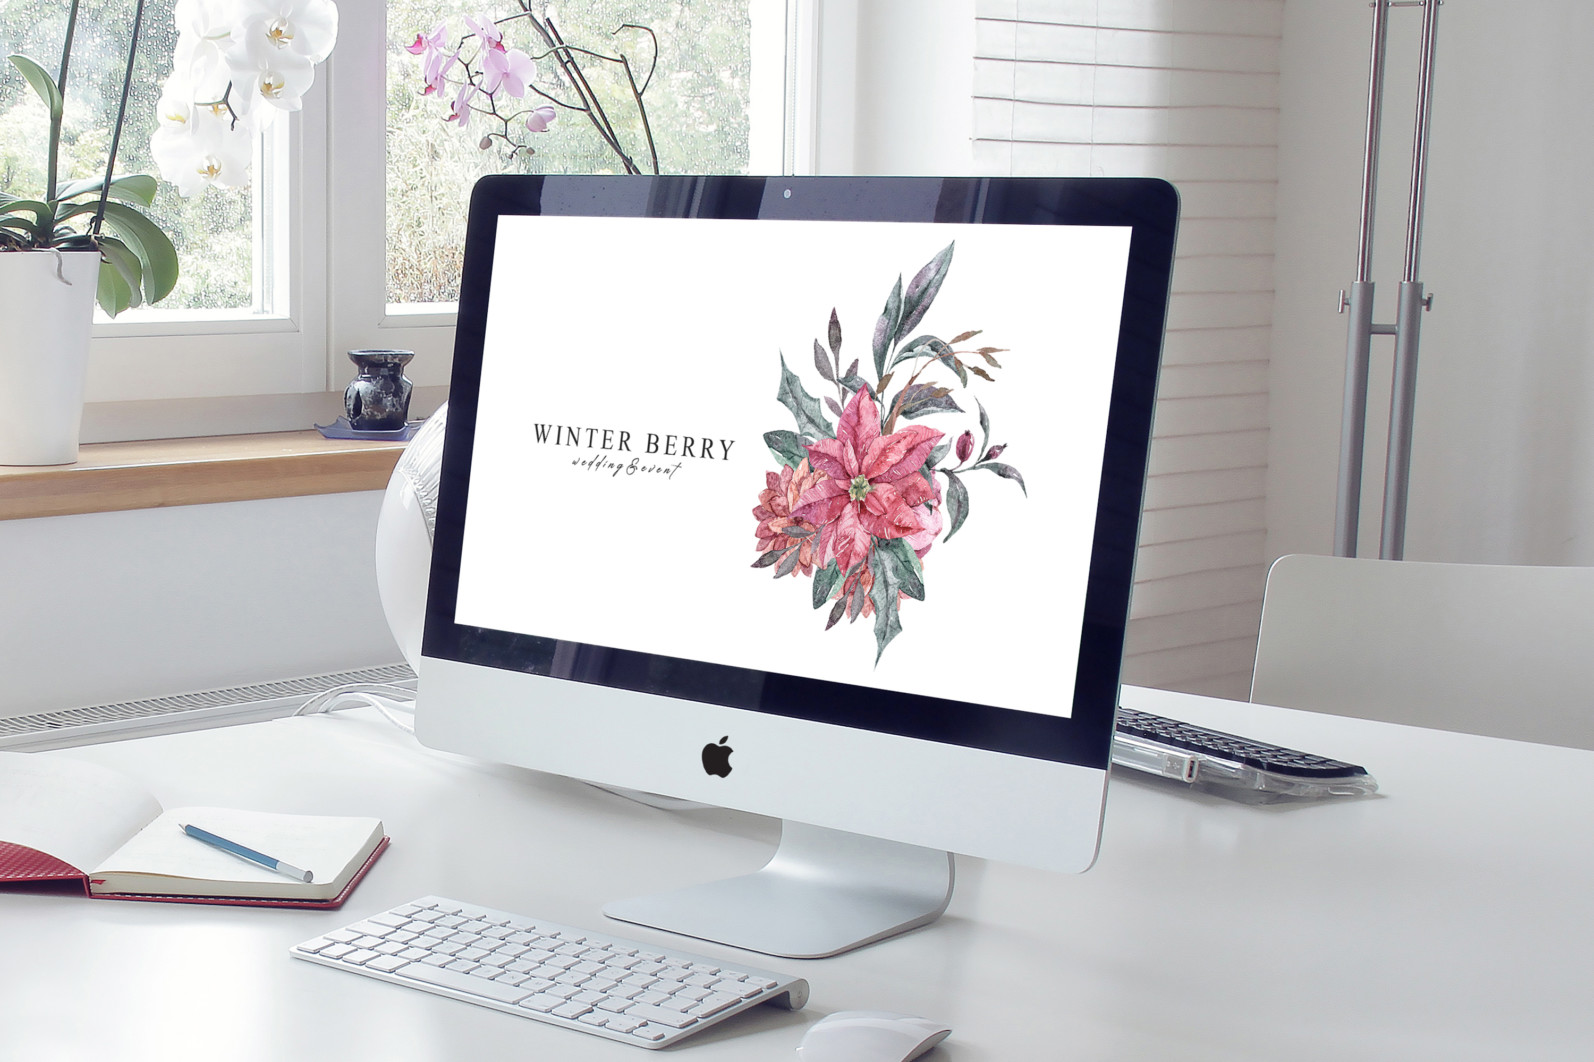 Floral bouquets sublimation / clipart- 3 png files - Free Elegant Interior iMac Pro Mockup PSD 2018 scaled -